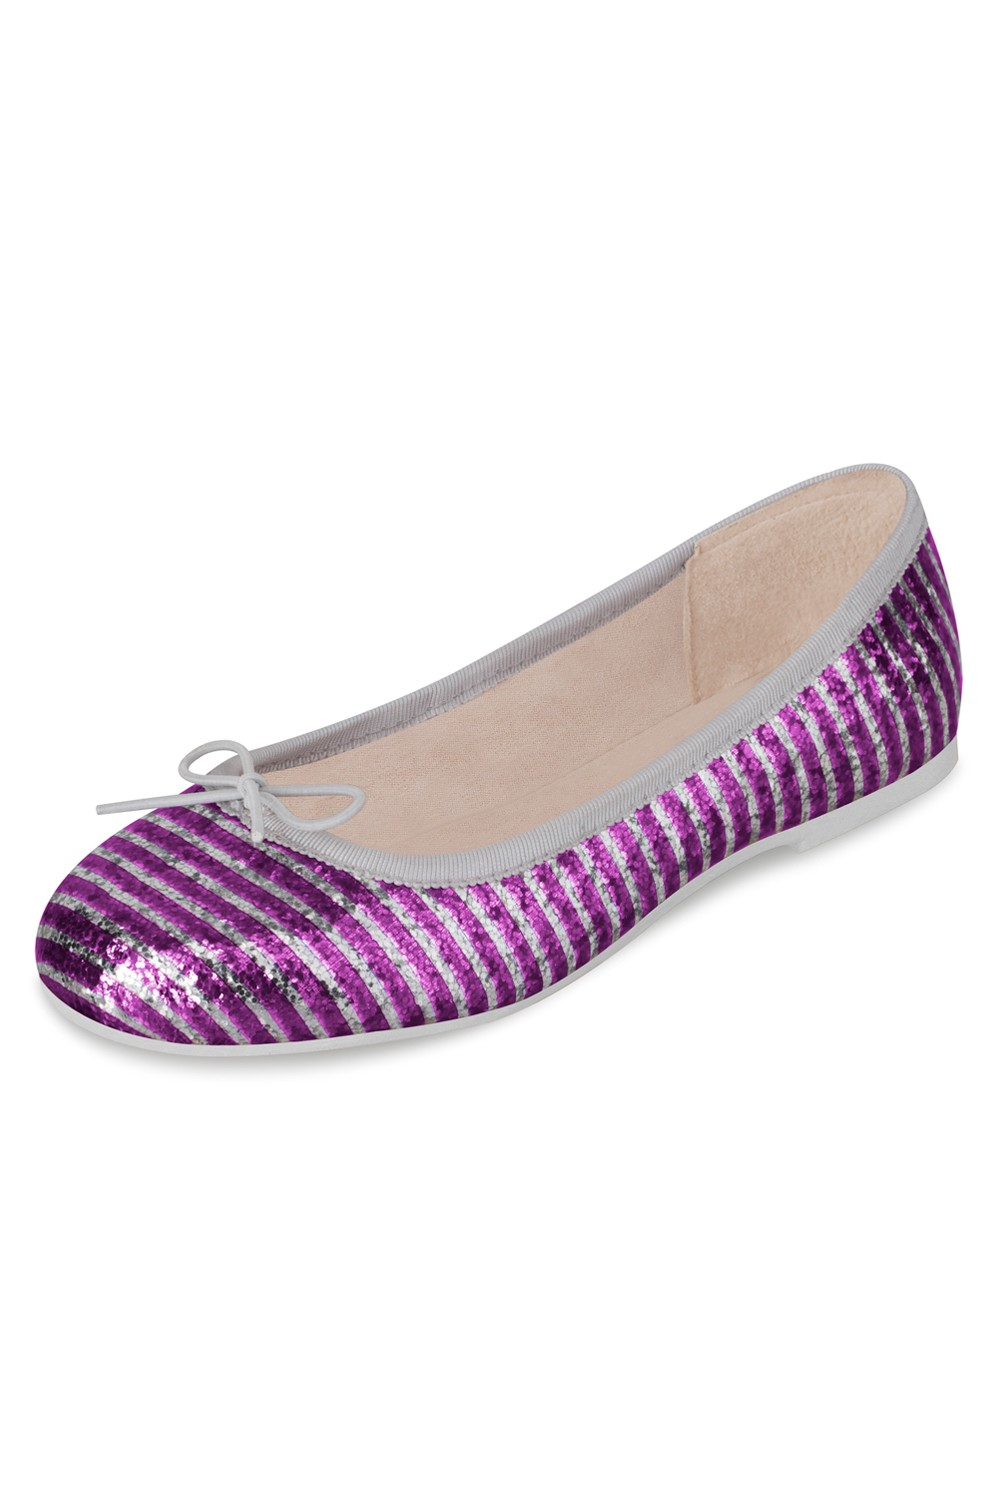 Girls Alexia Glitter Stripe Patent Ballet Flat Sho Girls Fashion Shoes